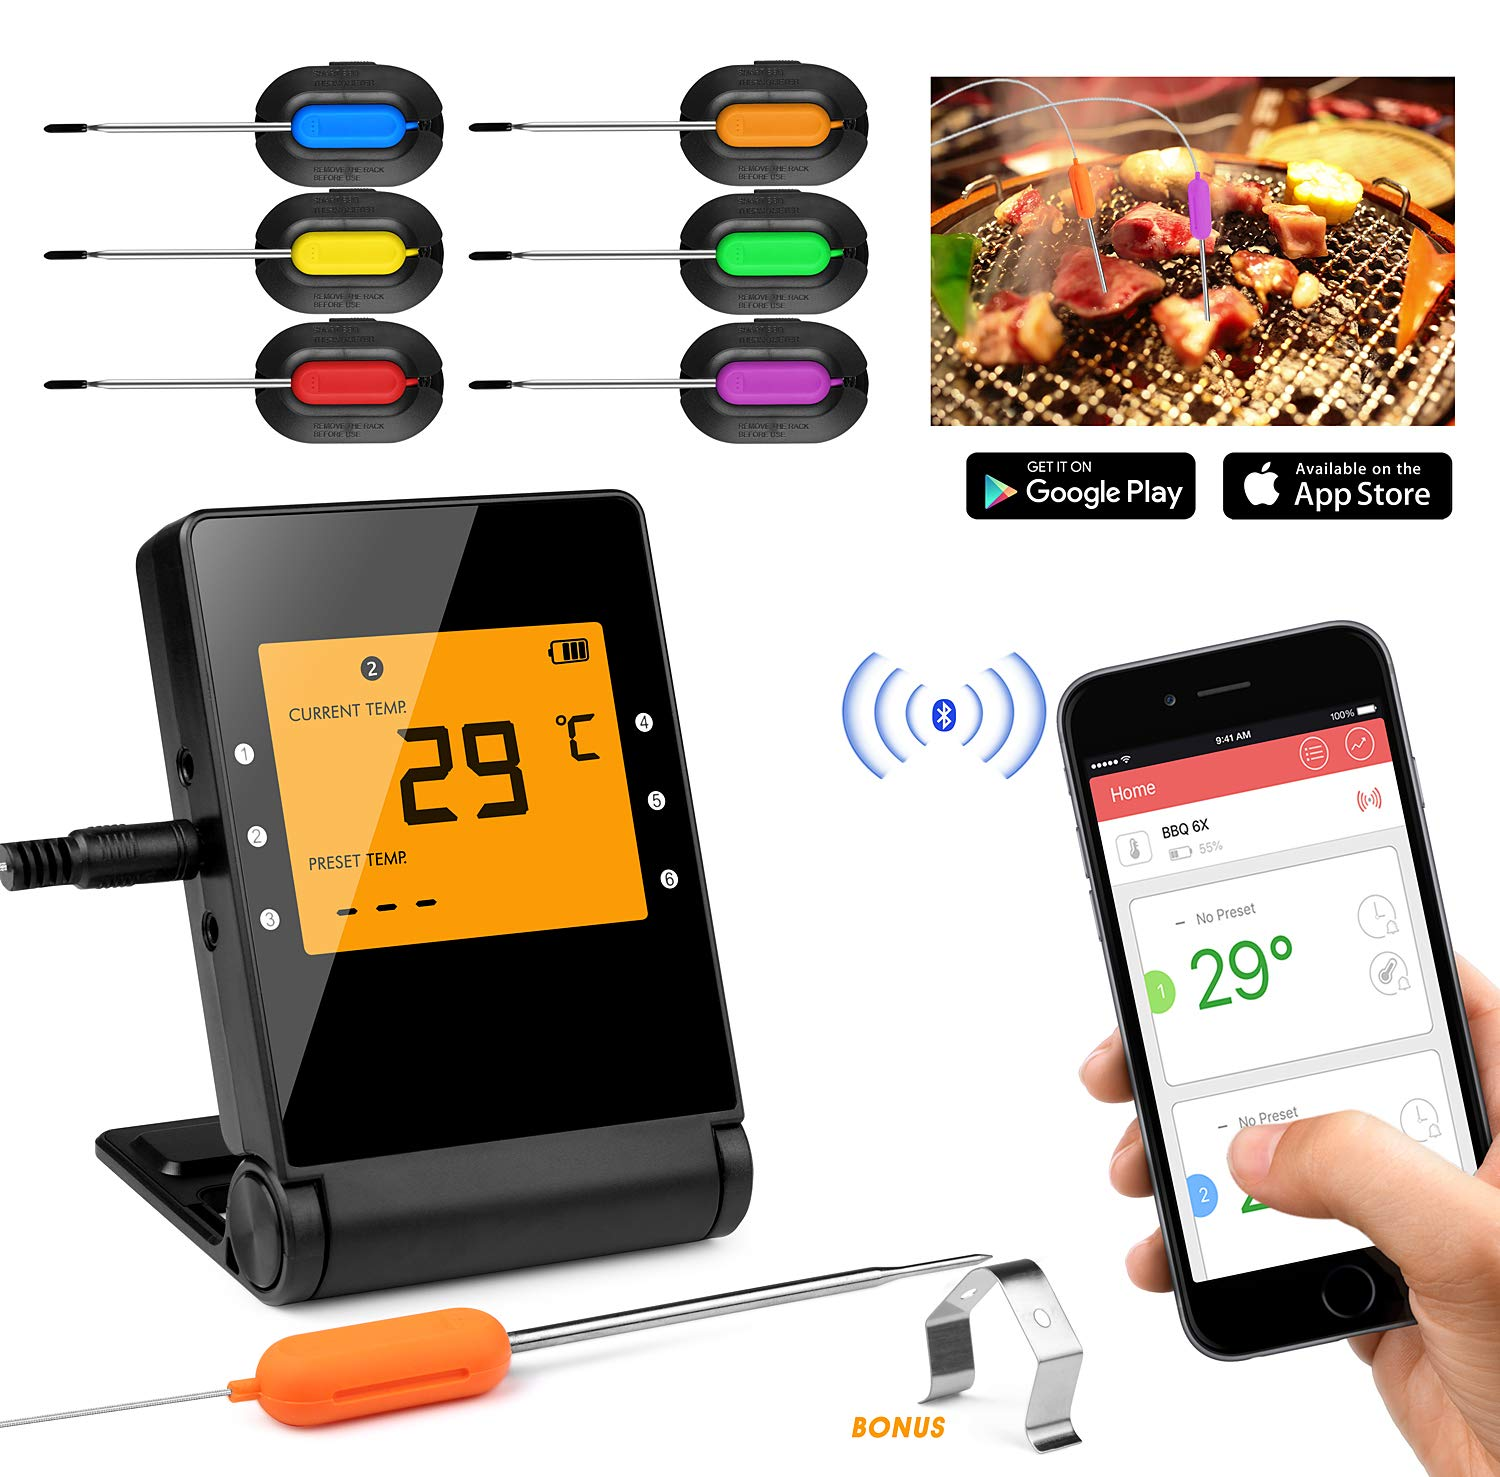 Meat Thermometer,Basecamp Wireless BBQ Thermometer,Bluetooth Smartphone Meat Thermometer with 6 Stainless Steel Probes Remote Monitor for Grilling, Cooking Kitchen Oven, for IOS & Android